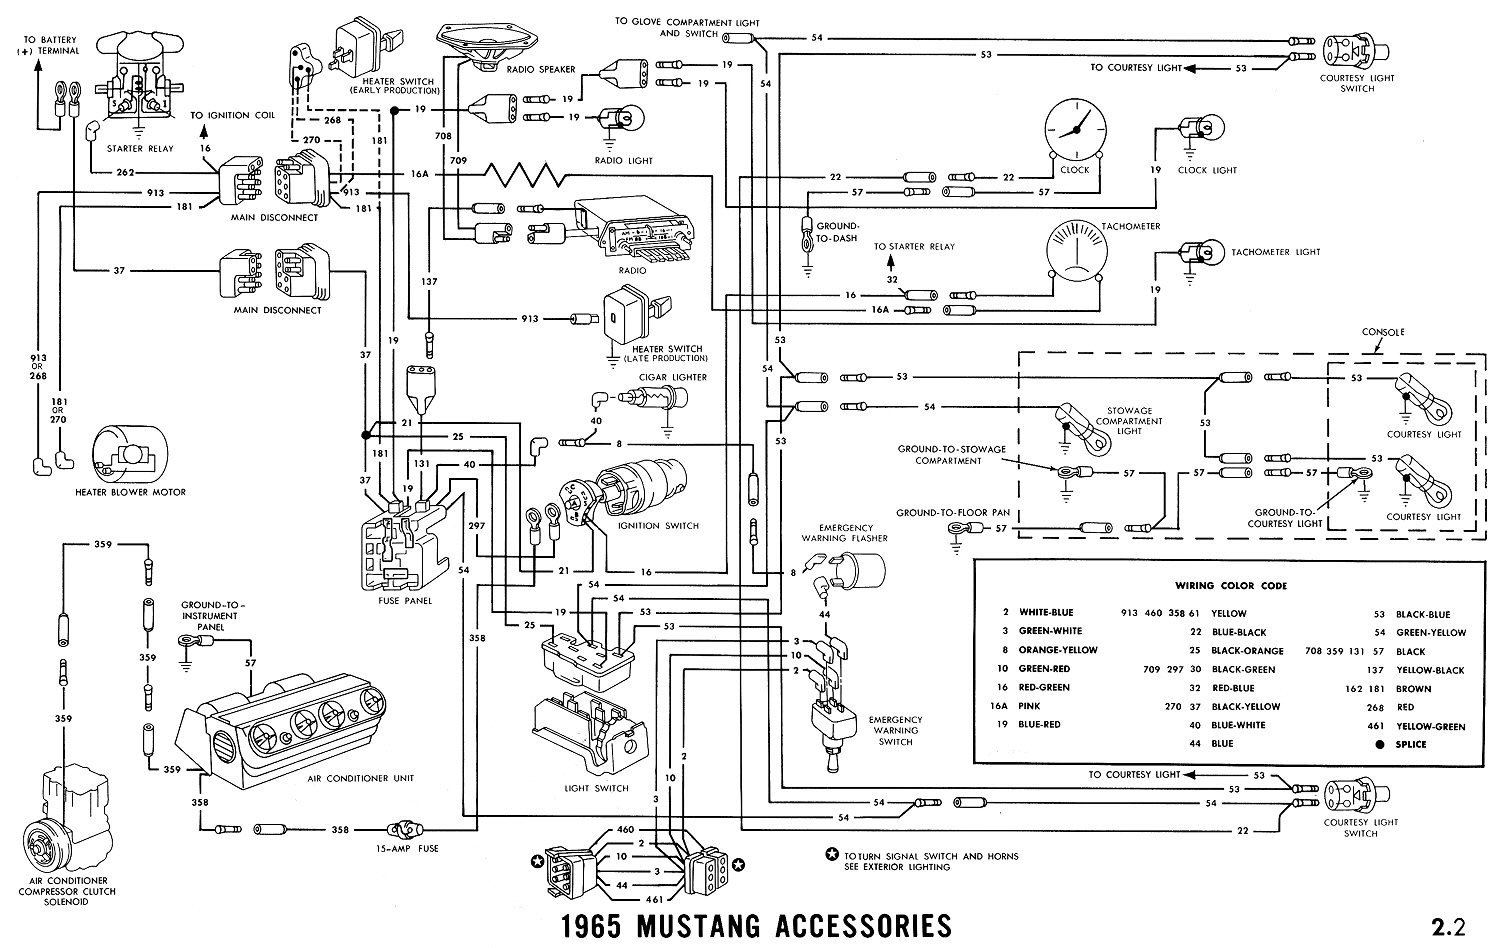 1965i 1965 mustang wiring diagrams average joe restoration mustang wiring diagrams at nearapp.co